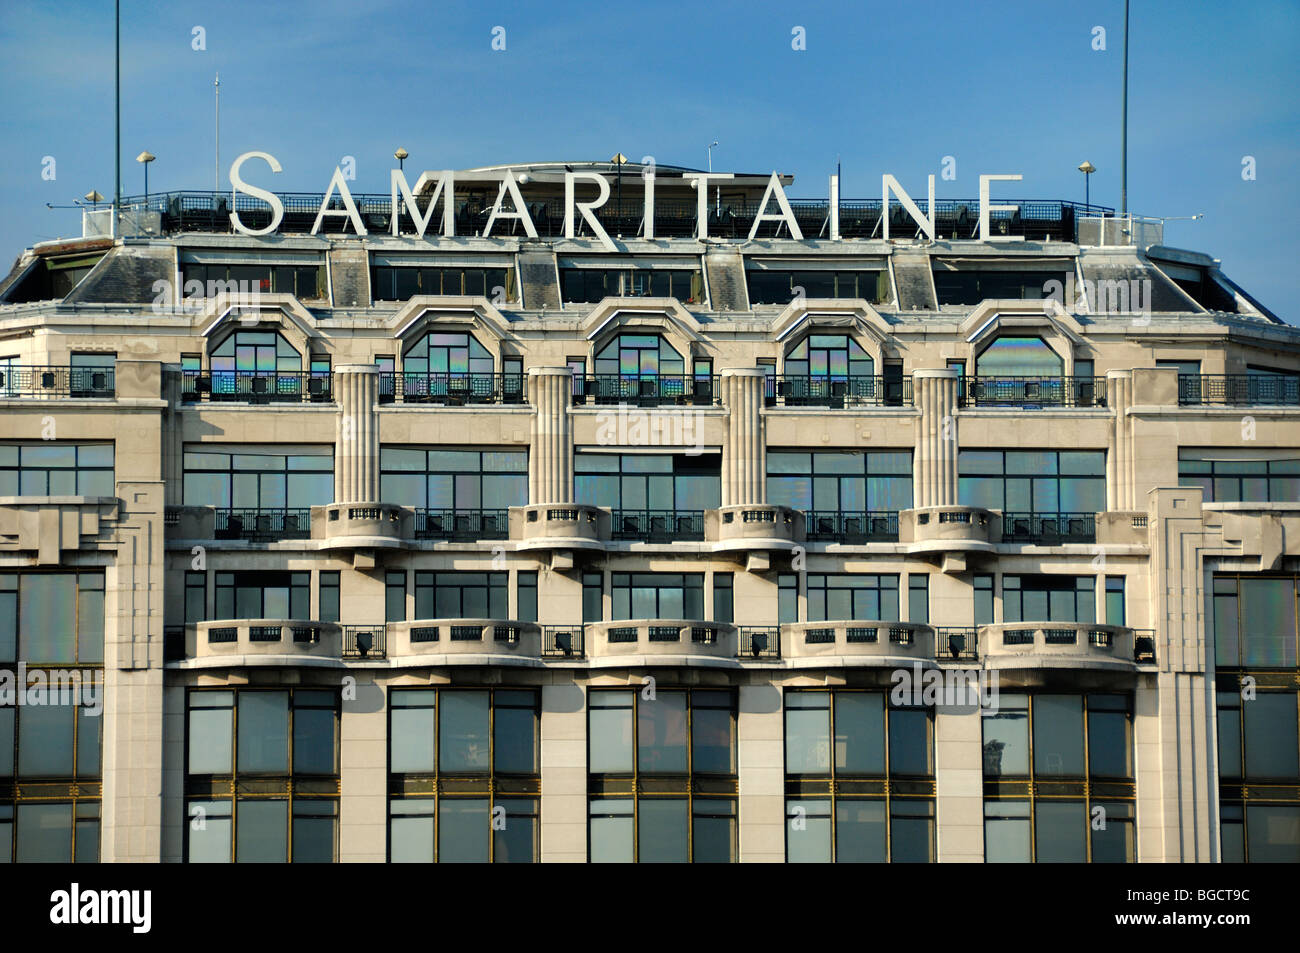 La Samaritaine Department Store, Art Deco Facade with Stone Balconies,  Paris, France